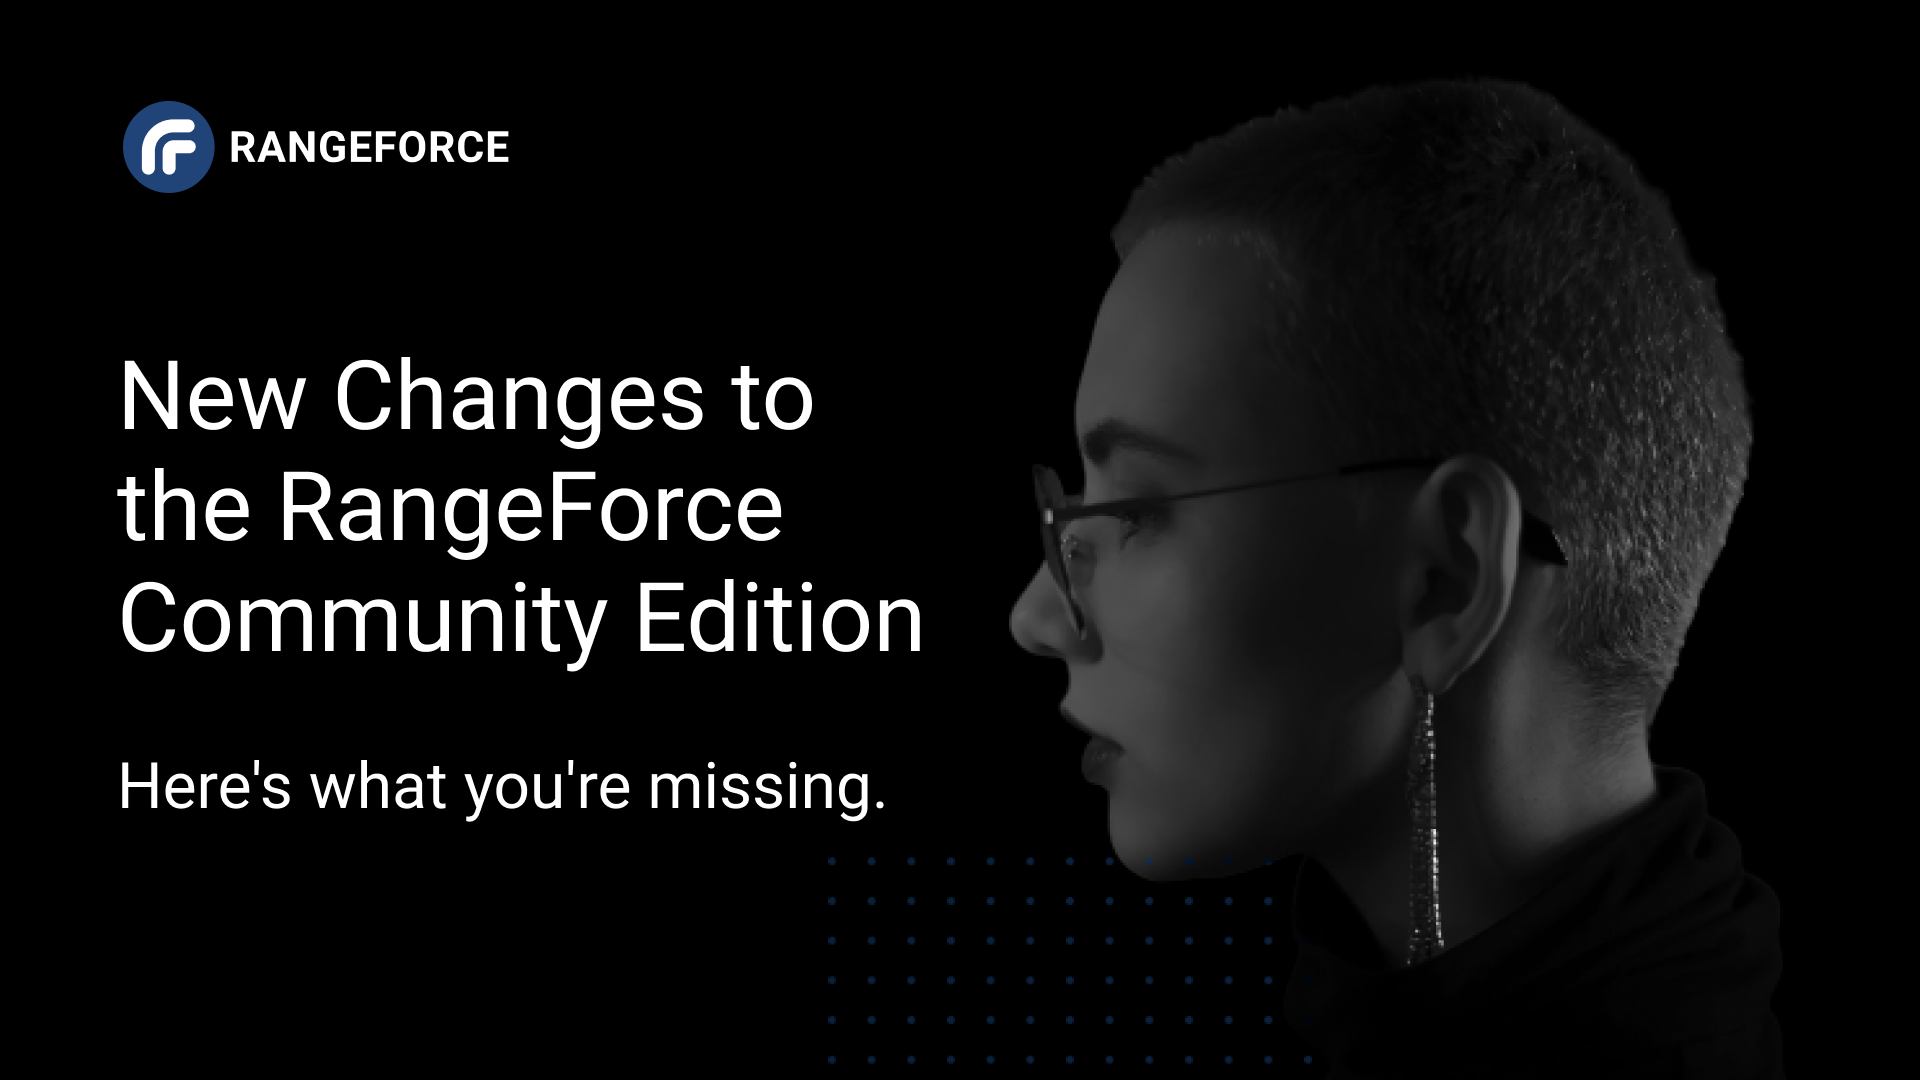 free cybersecurity training in the rangeforce community edition